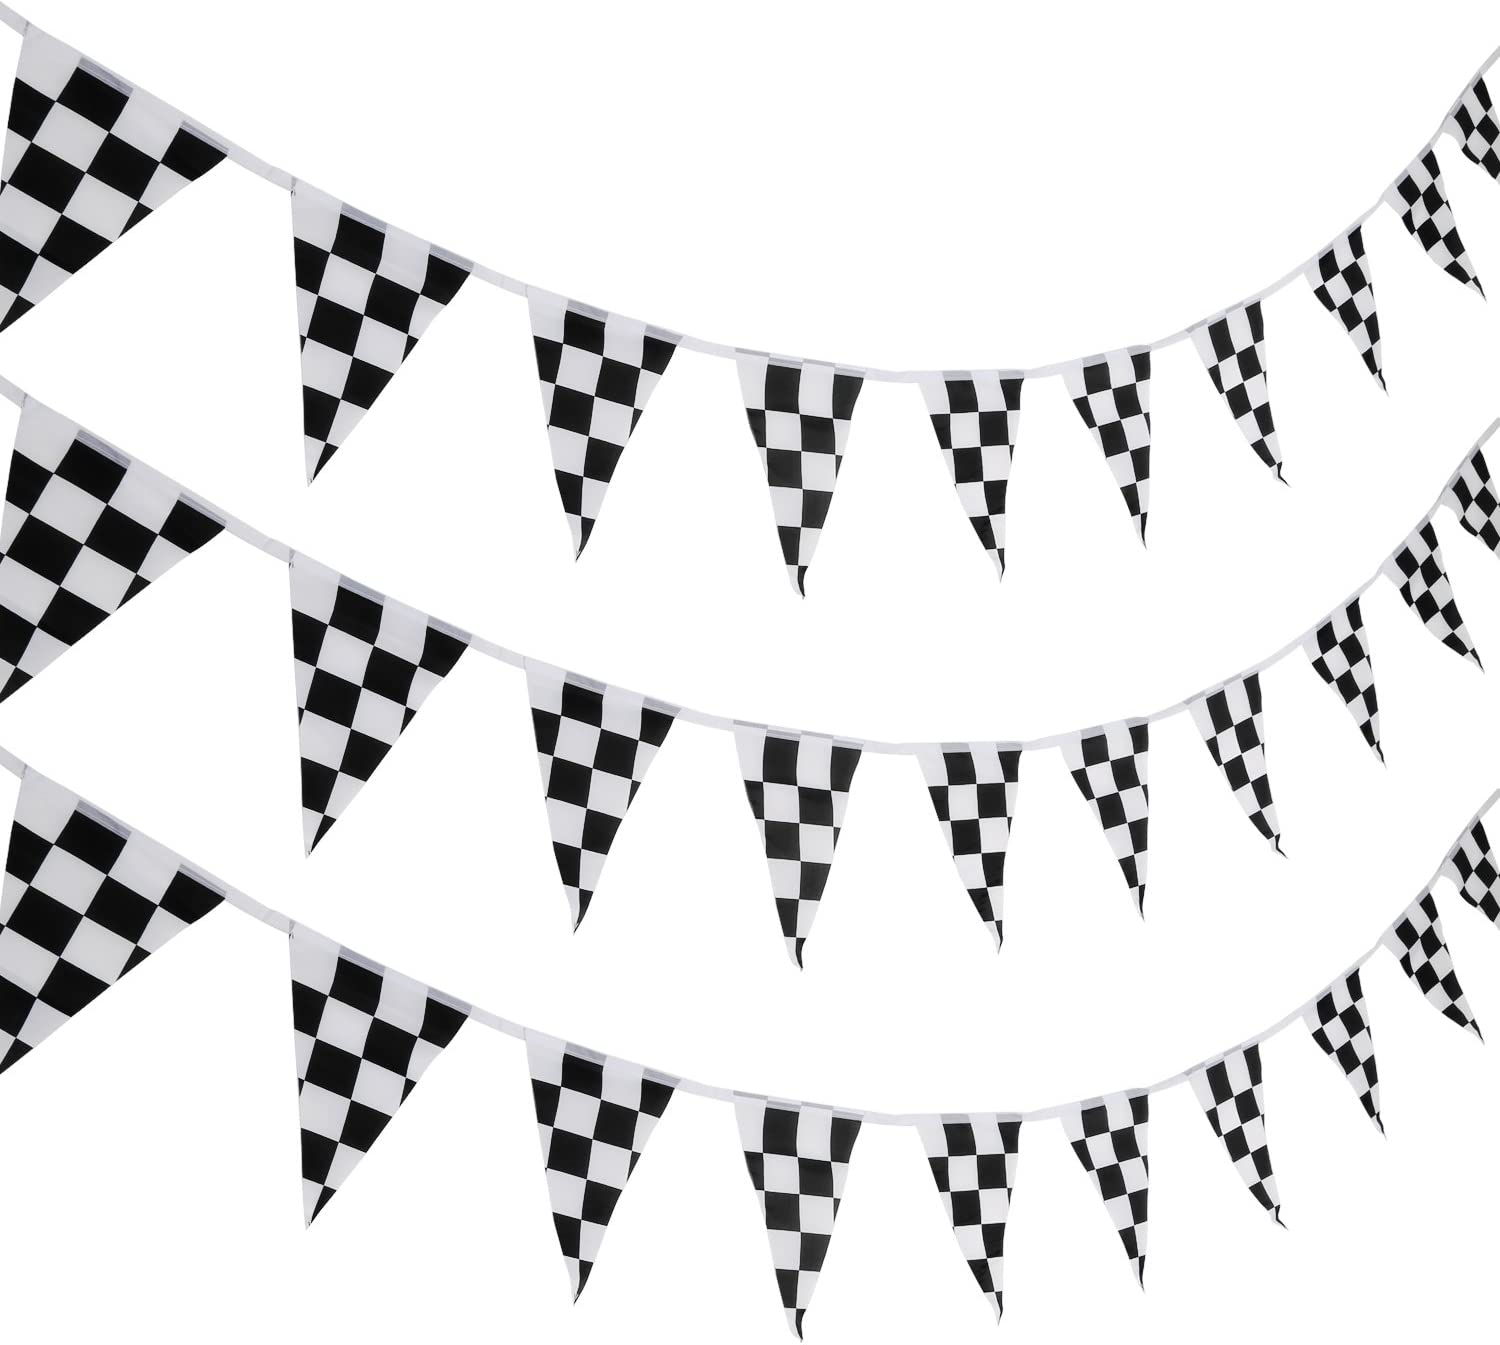 Pangda 10 Meters Checkered Black and White Pennant Banner Flags Racing Party Banner Decorations for Race Car Party Sport Events